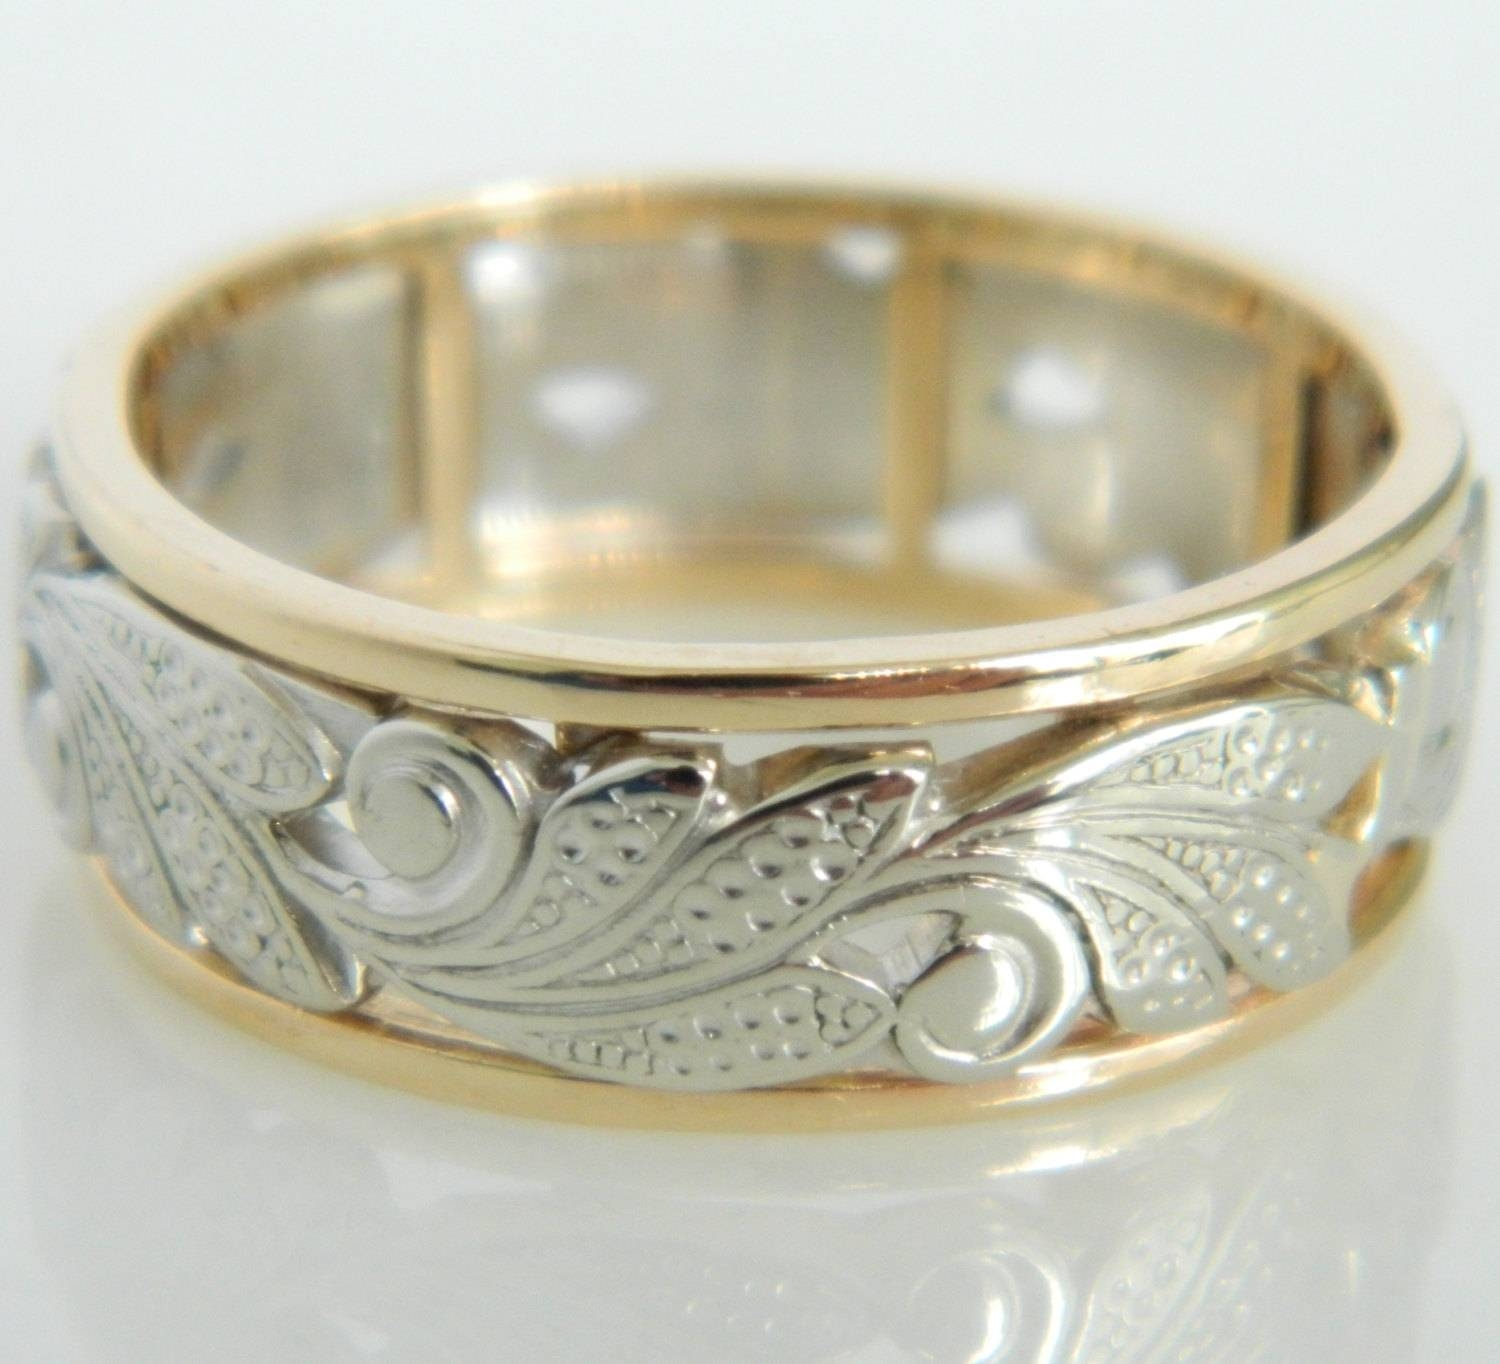 Vintage Artcarved 14K White & Yellow Gold Wedding Band Pertaining To Art Carved Wedding Bands (View 15 of 15)